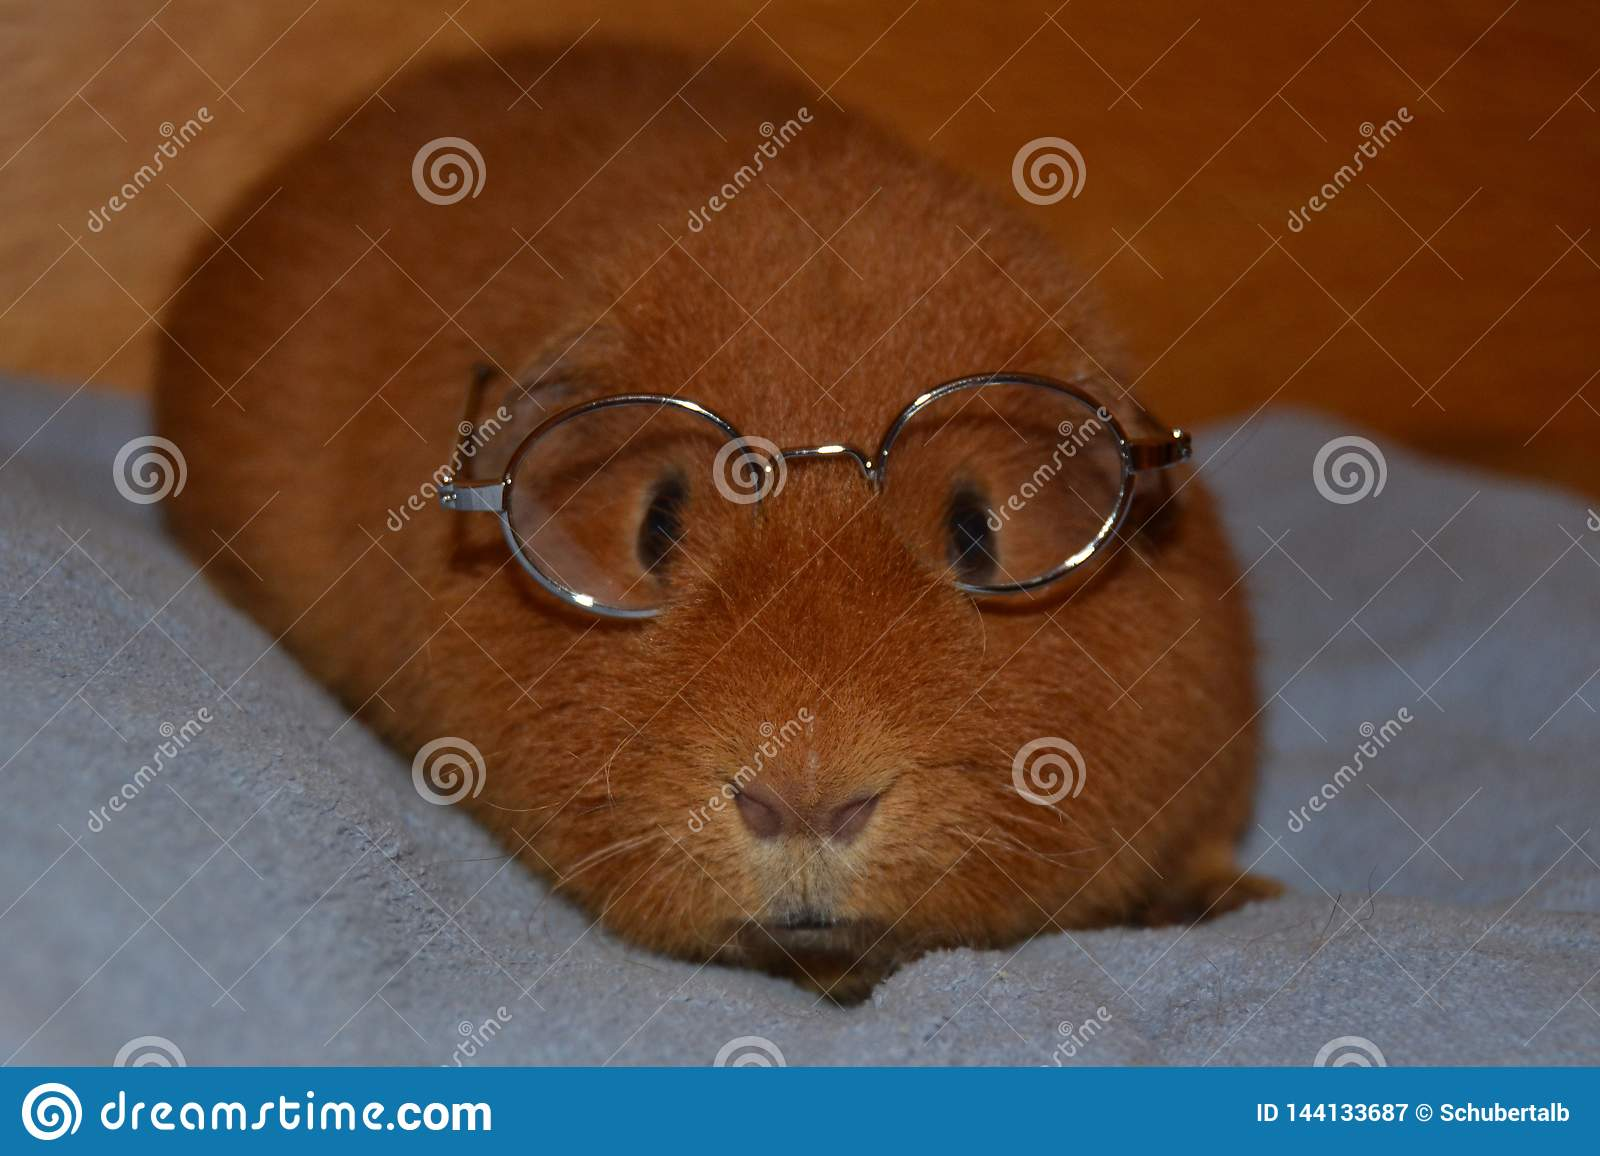 Teddy Guinea Pig with Glasses